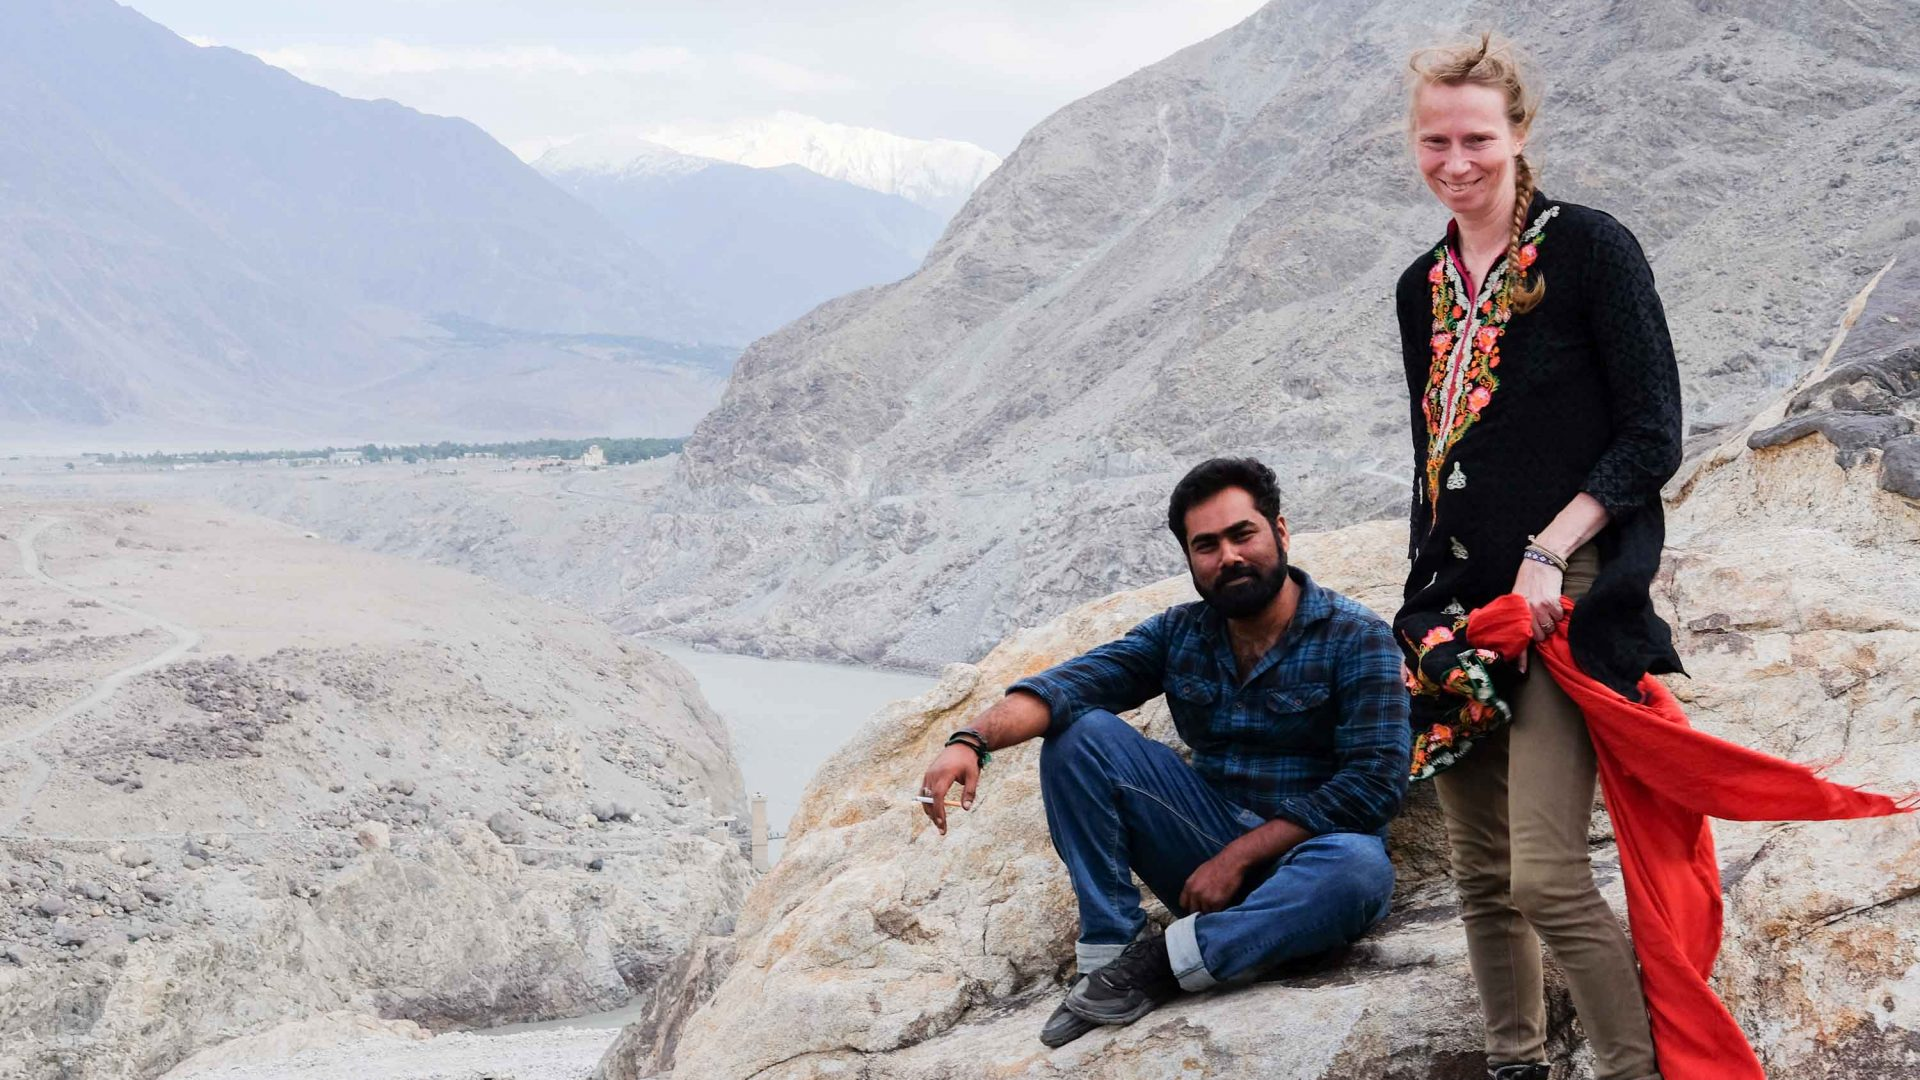 Syed Hamza Mobeen, better known as Shah, and Liz Norman, Shah's Australian wife, are the founders of Karakoram Bikers.